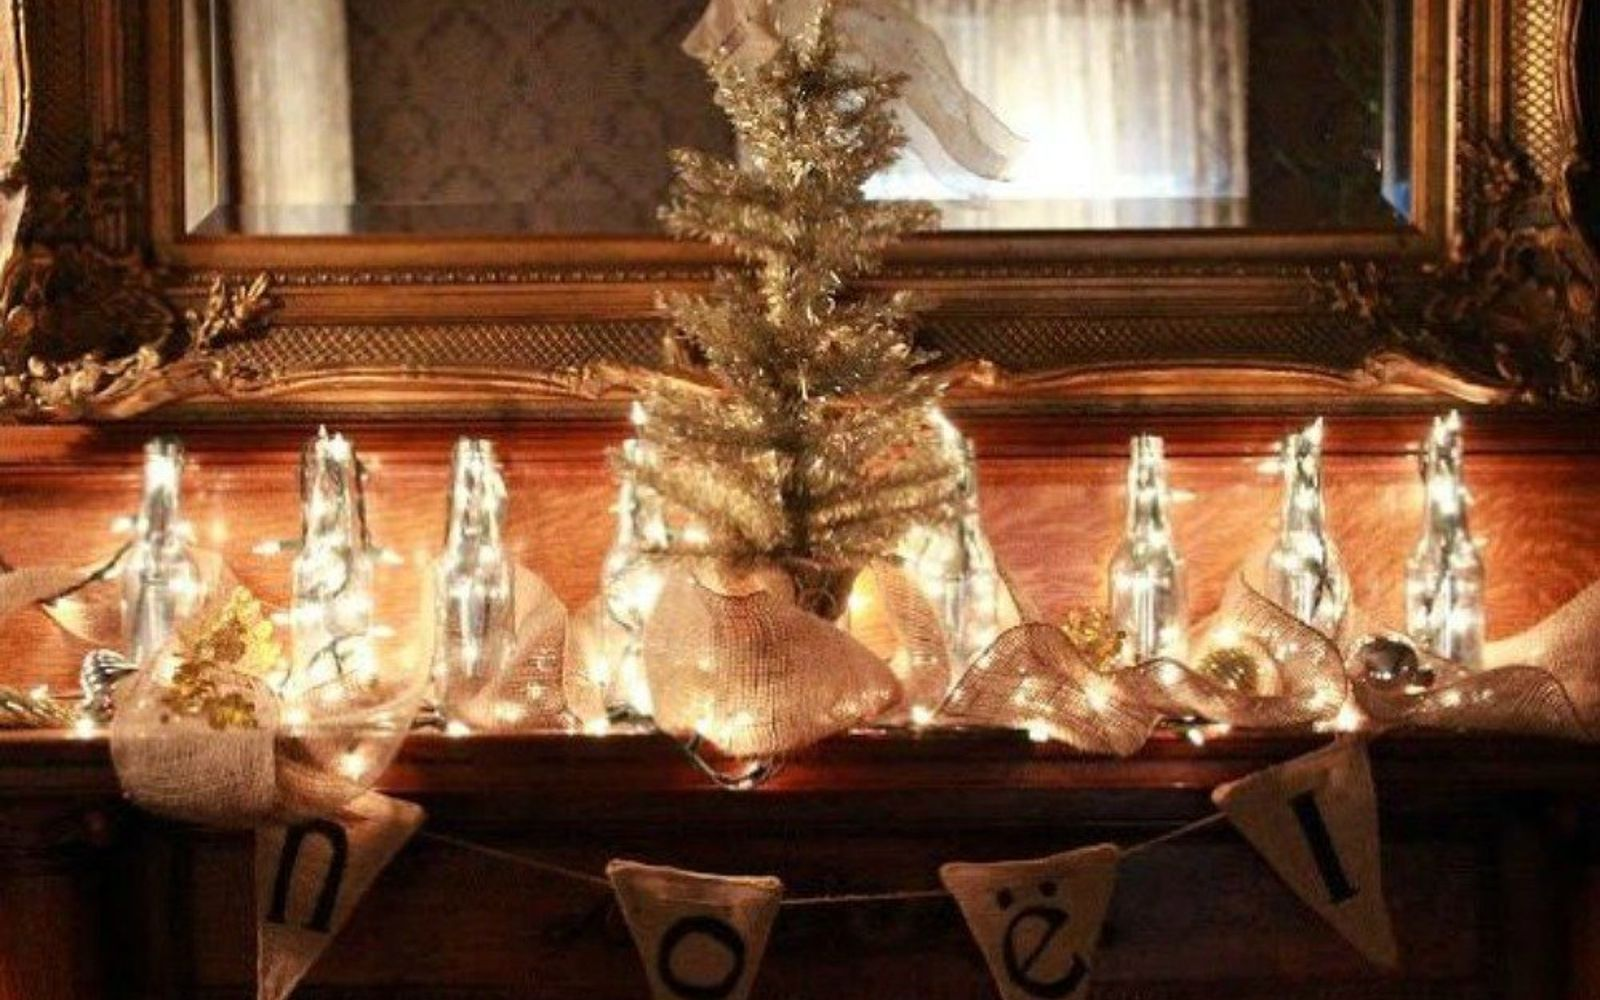 s hang your christmas lights in these 10 breathtaking spots, On your mantel in glowing bottles